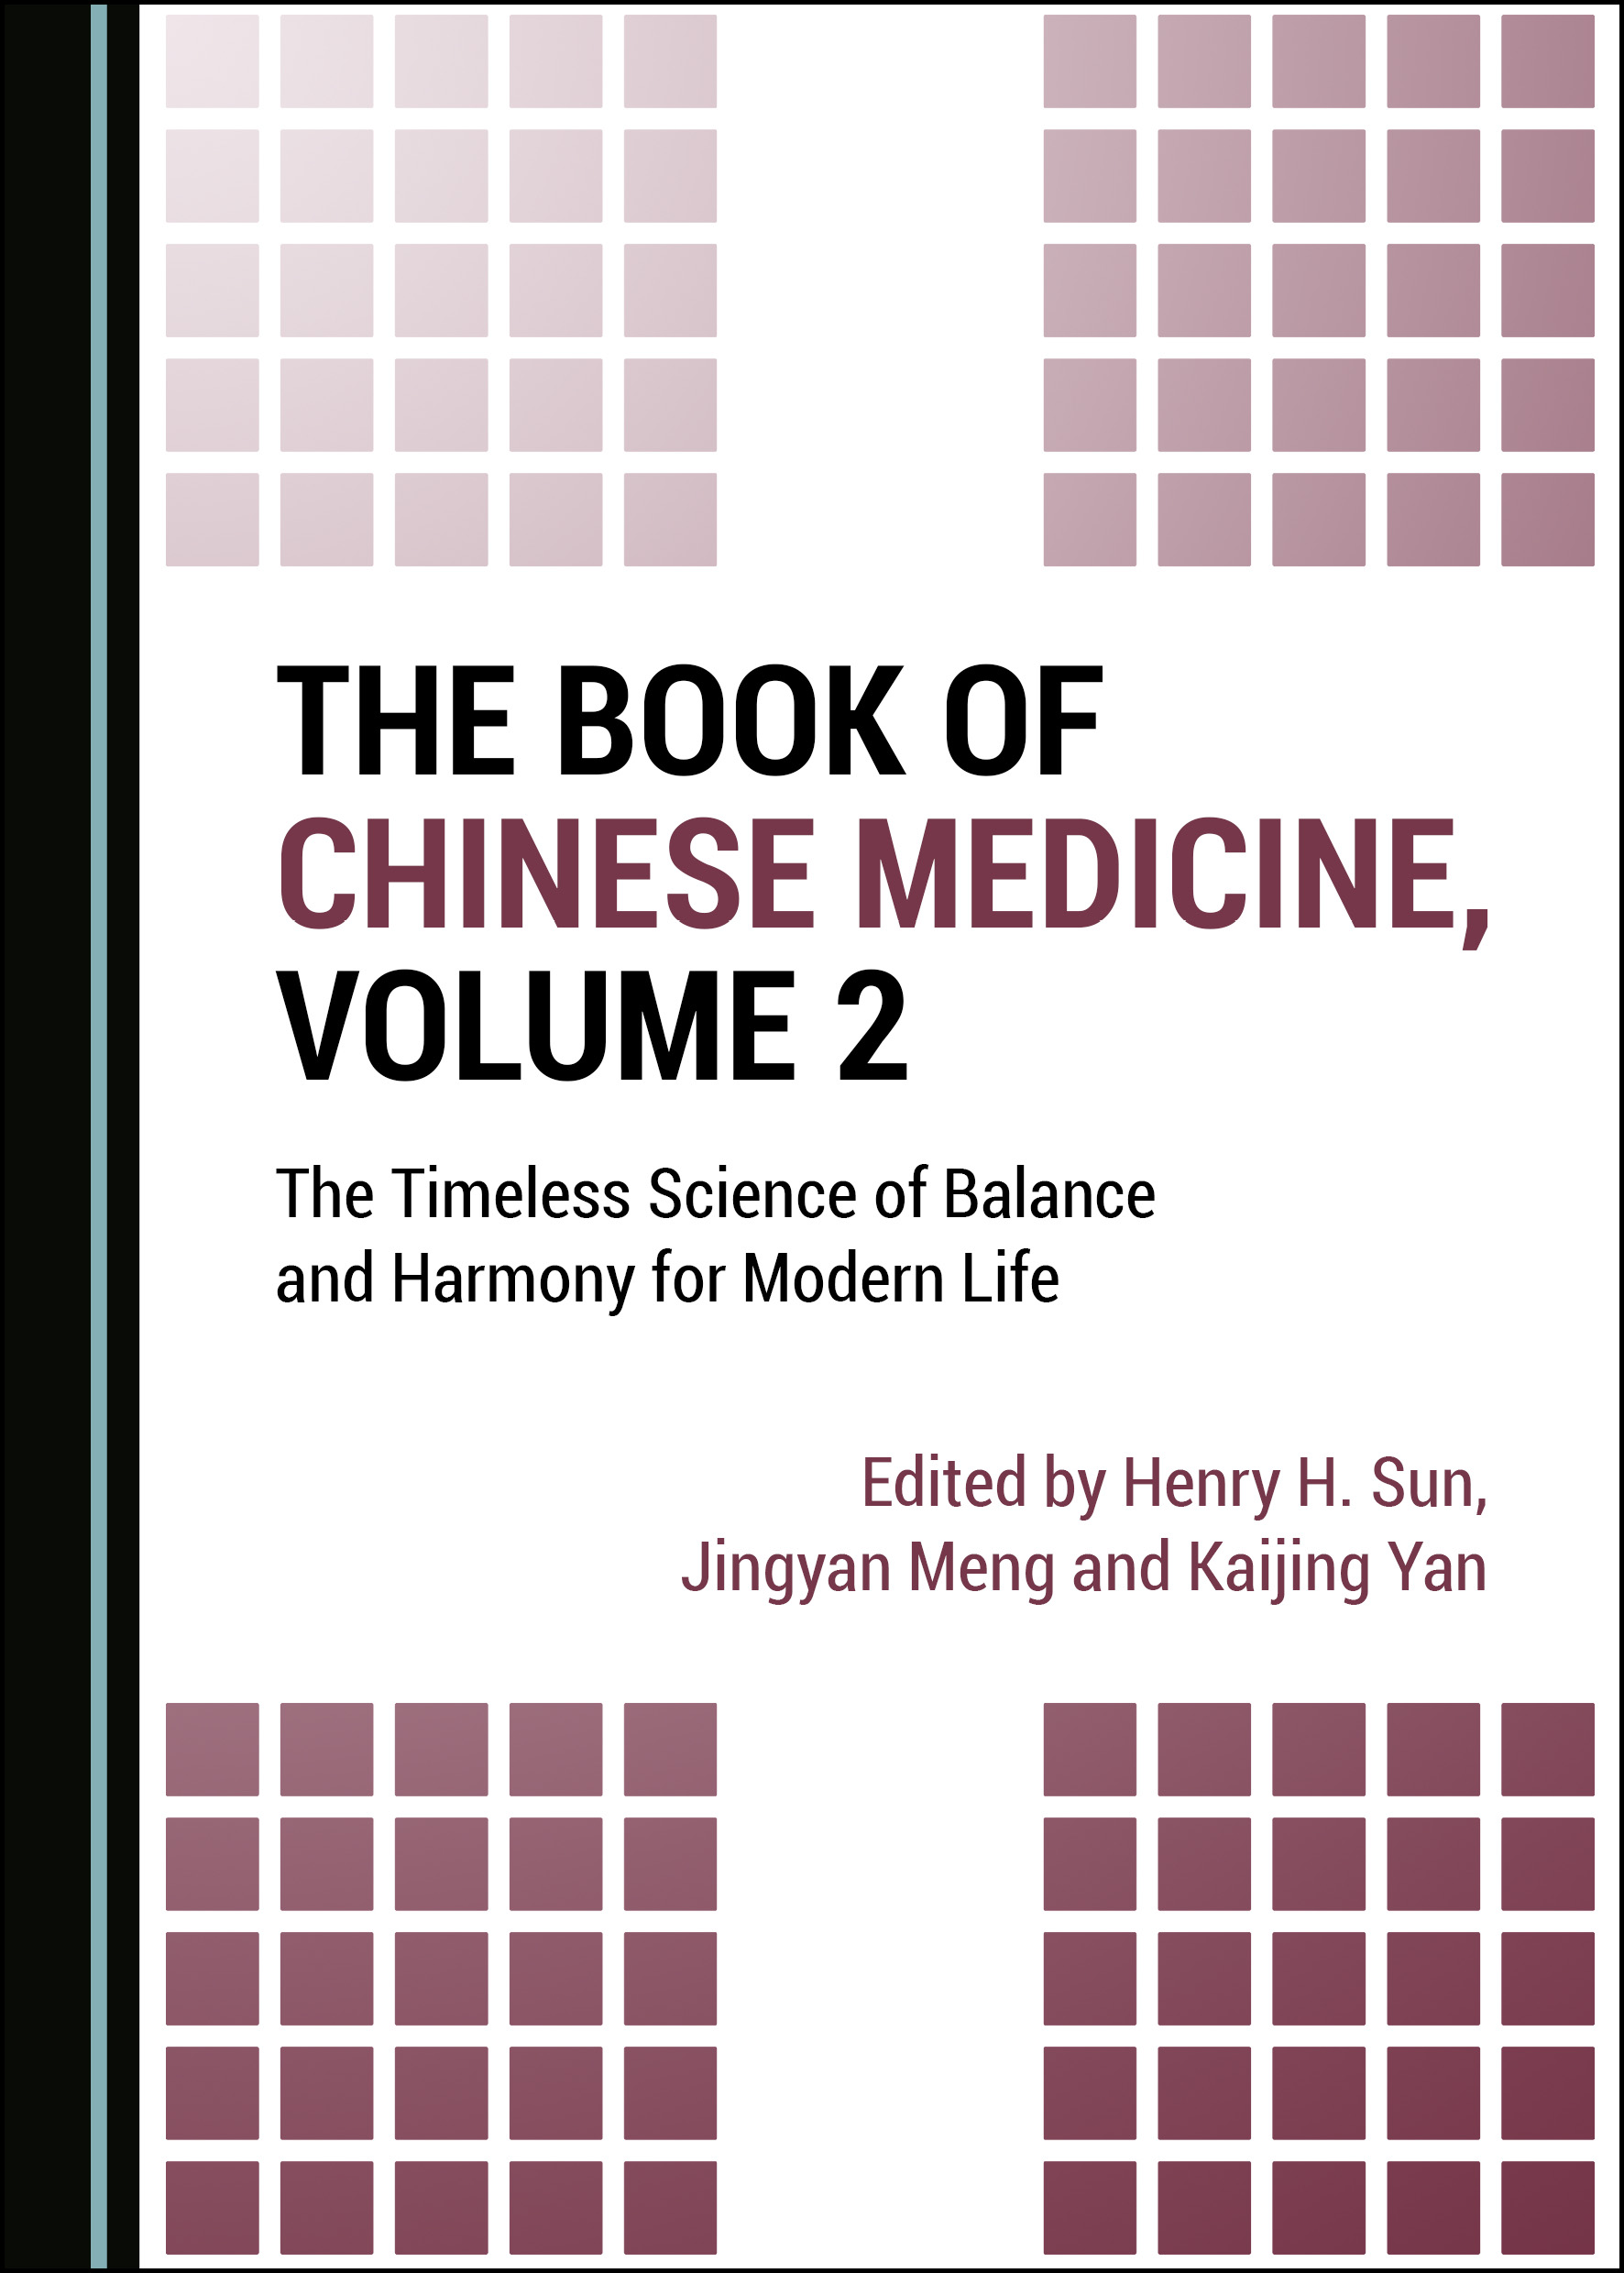 The Book of Chinese Medicine, Volume 2: The Timeless Science of Balance and Harmony for Modern Life